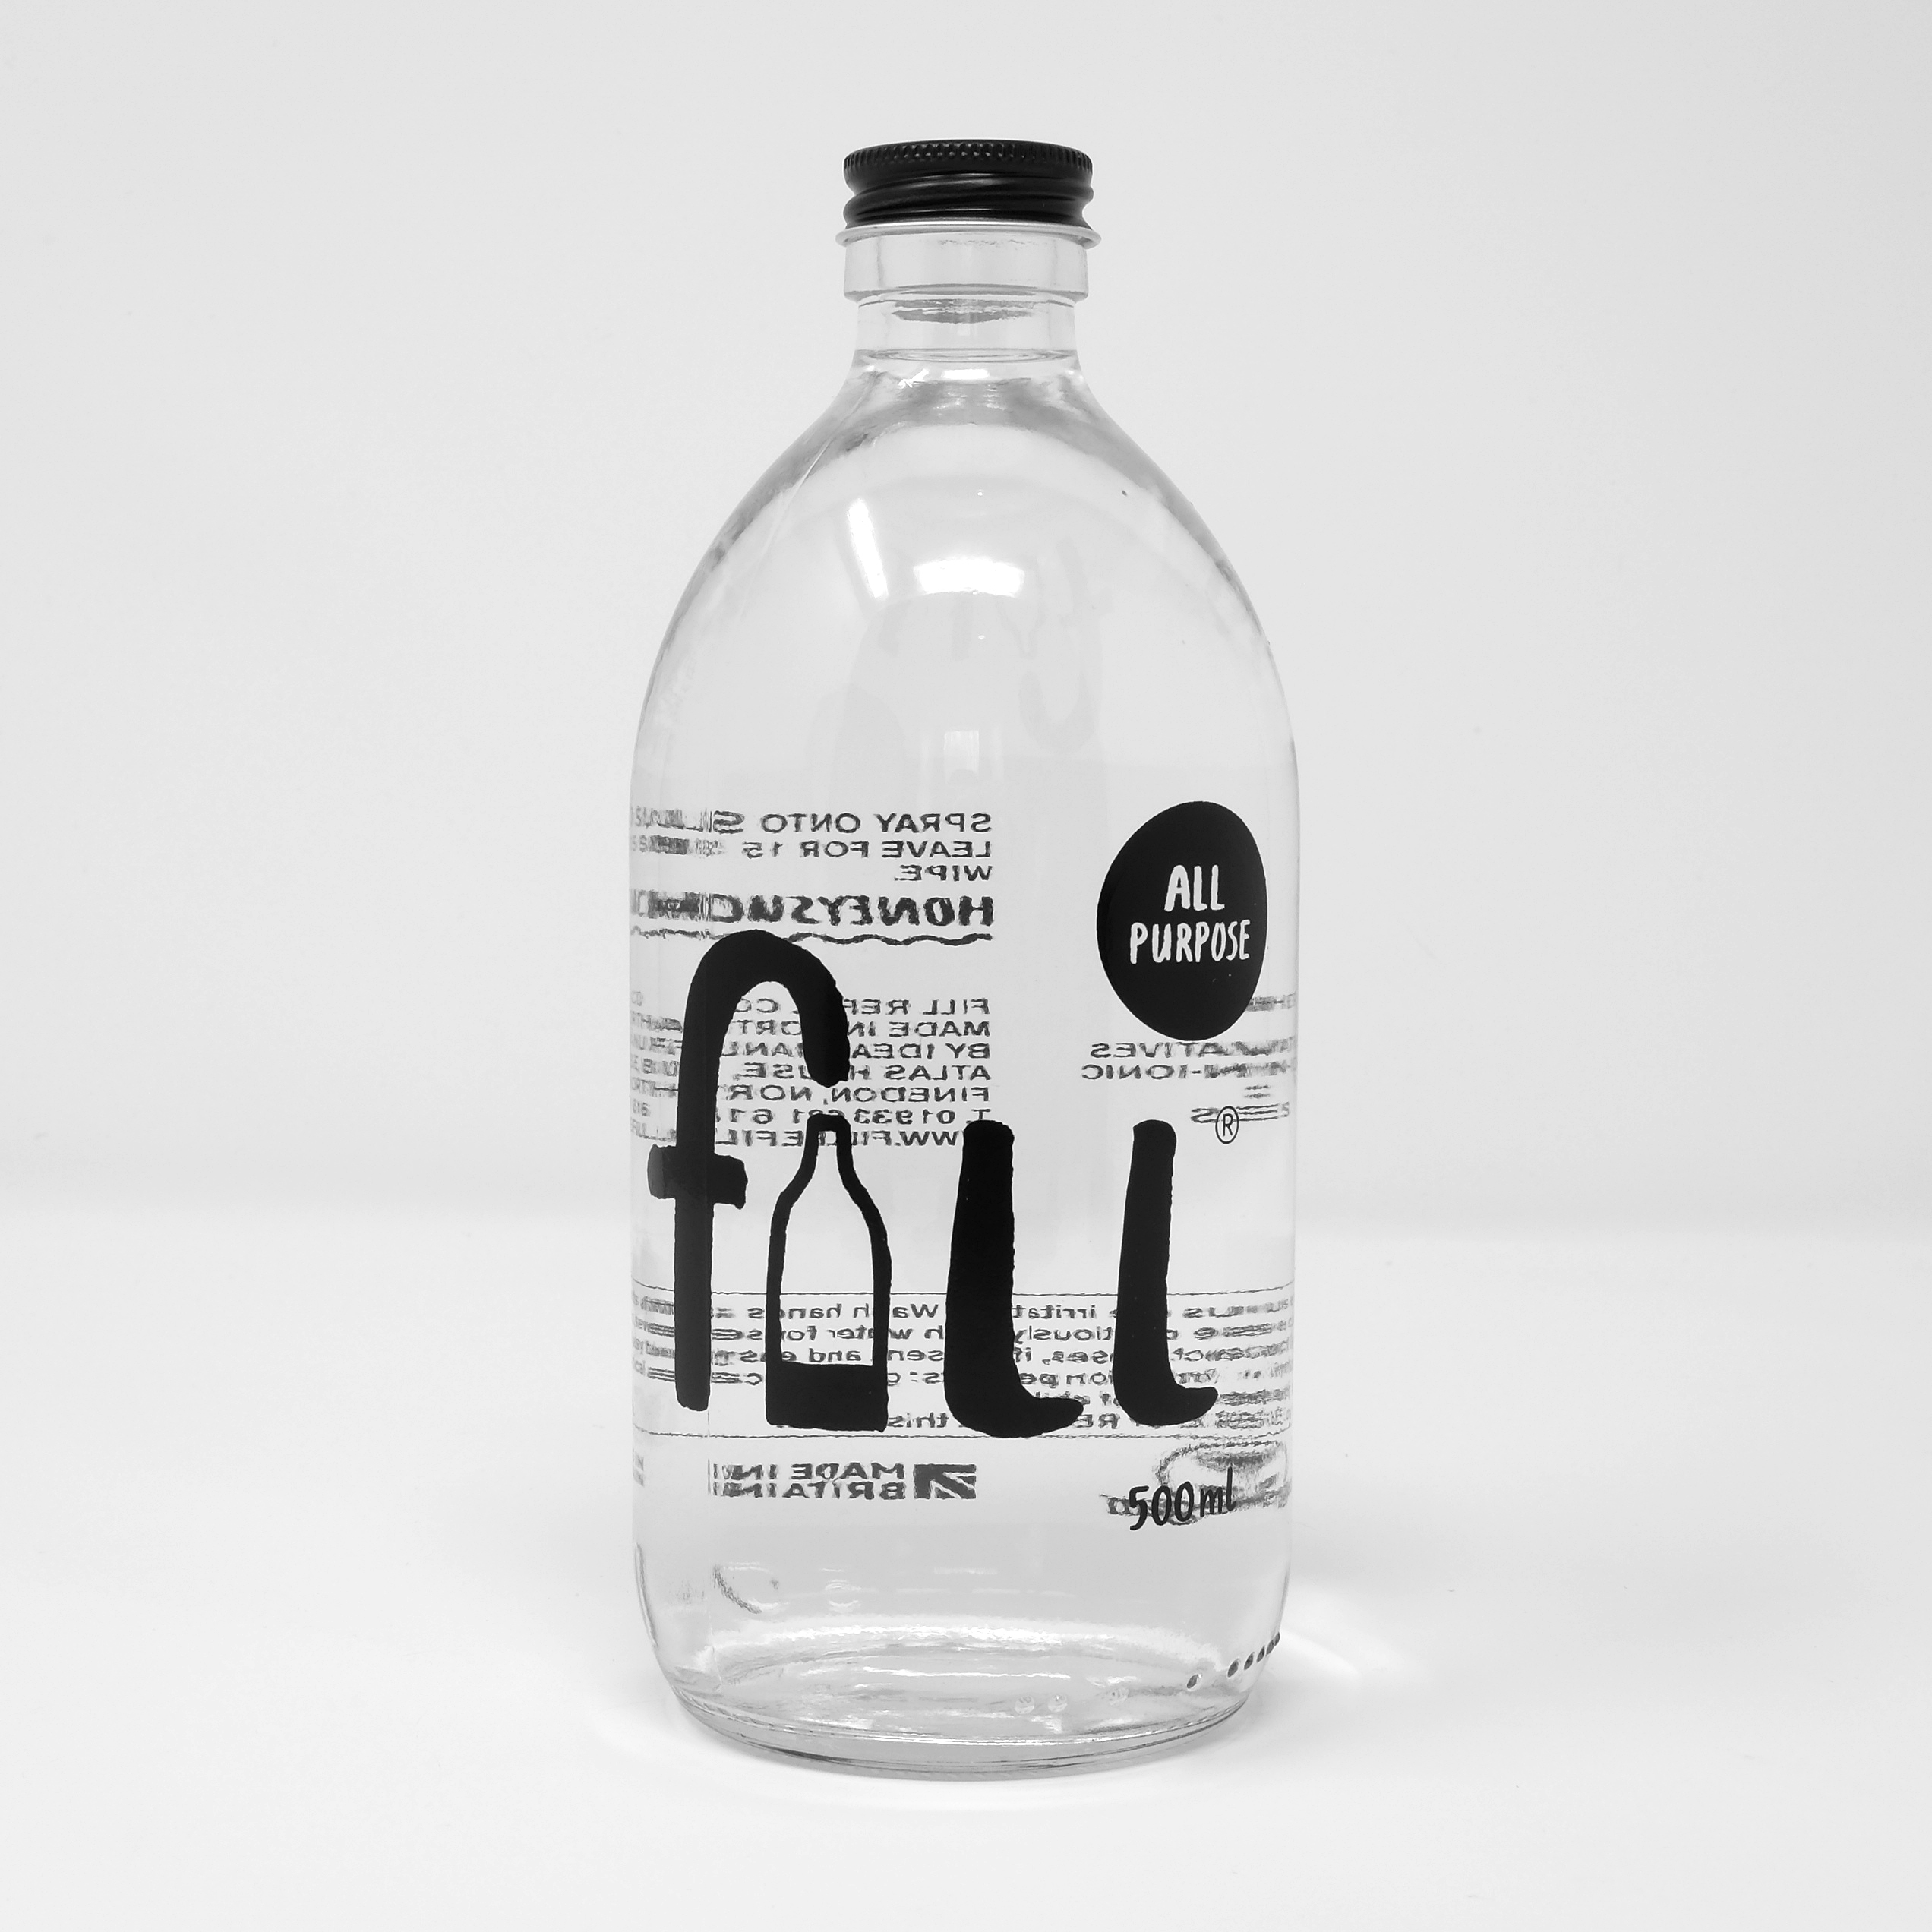 All Purpose - Honeysuckle (500ml, with bottle) by Fill